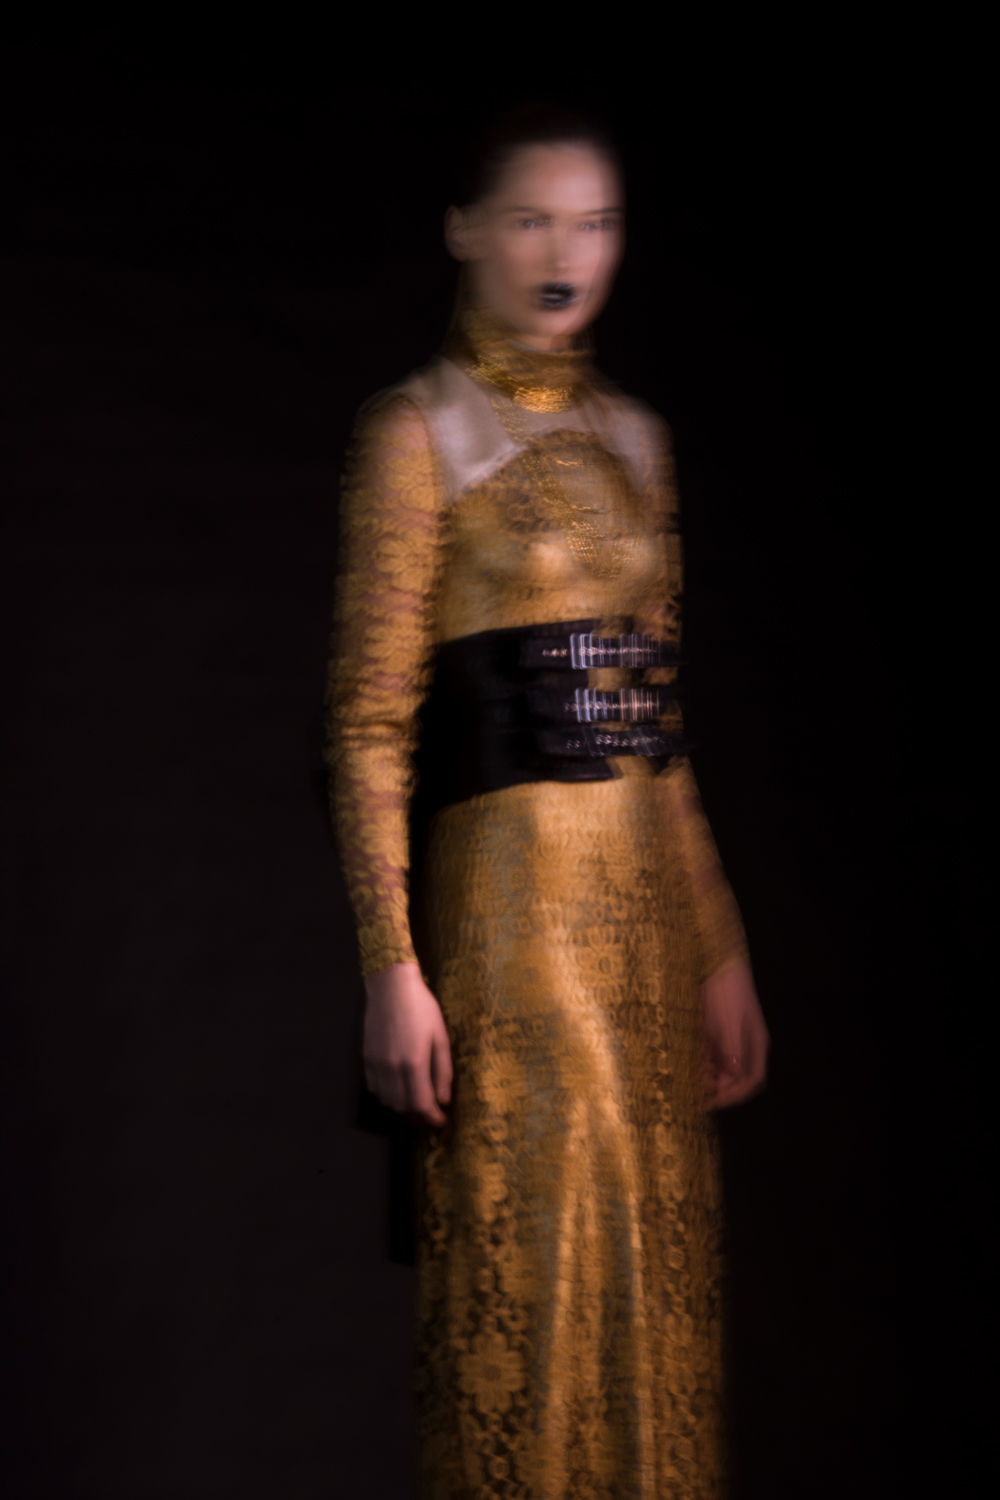 Golden lace dress with black corset belt in movement by Haruco-vert - Fashion photography by Ruud van Ooij